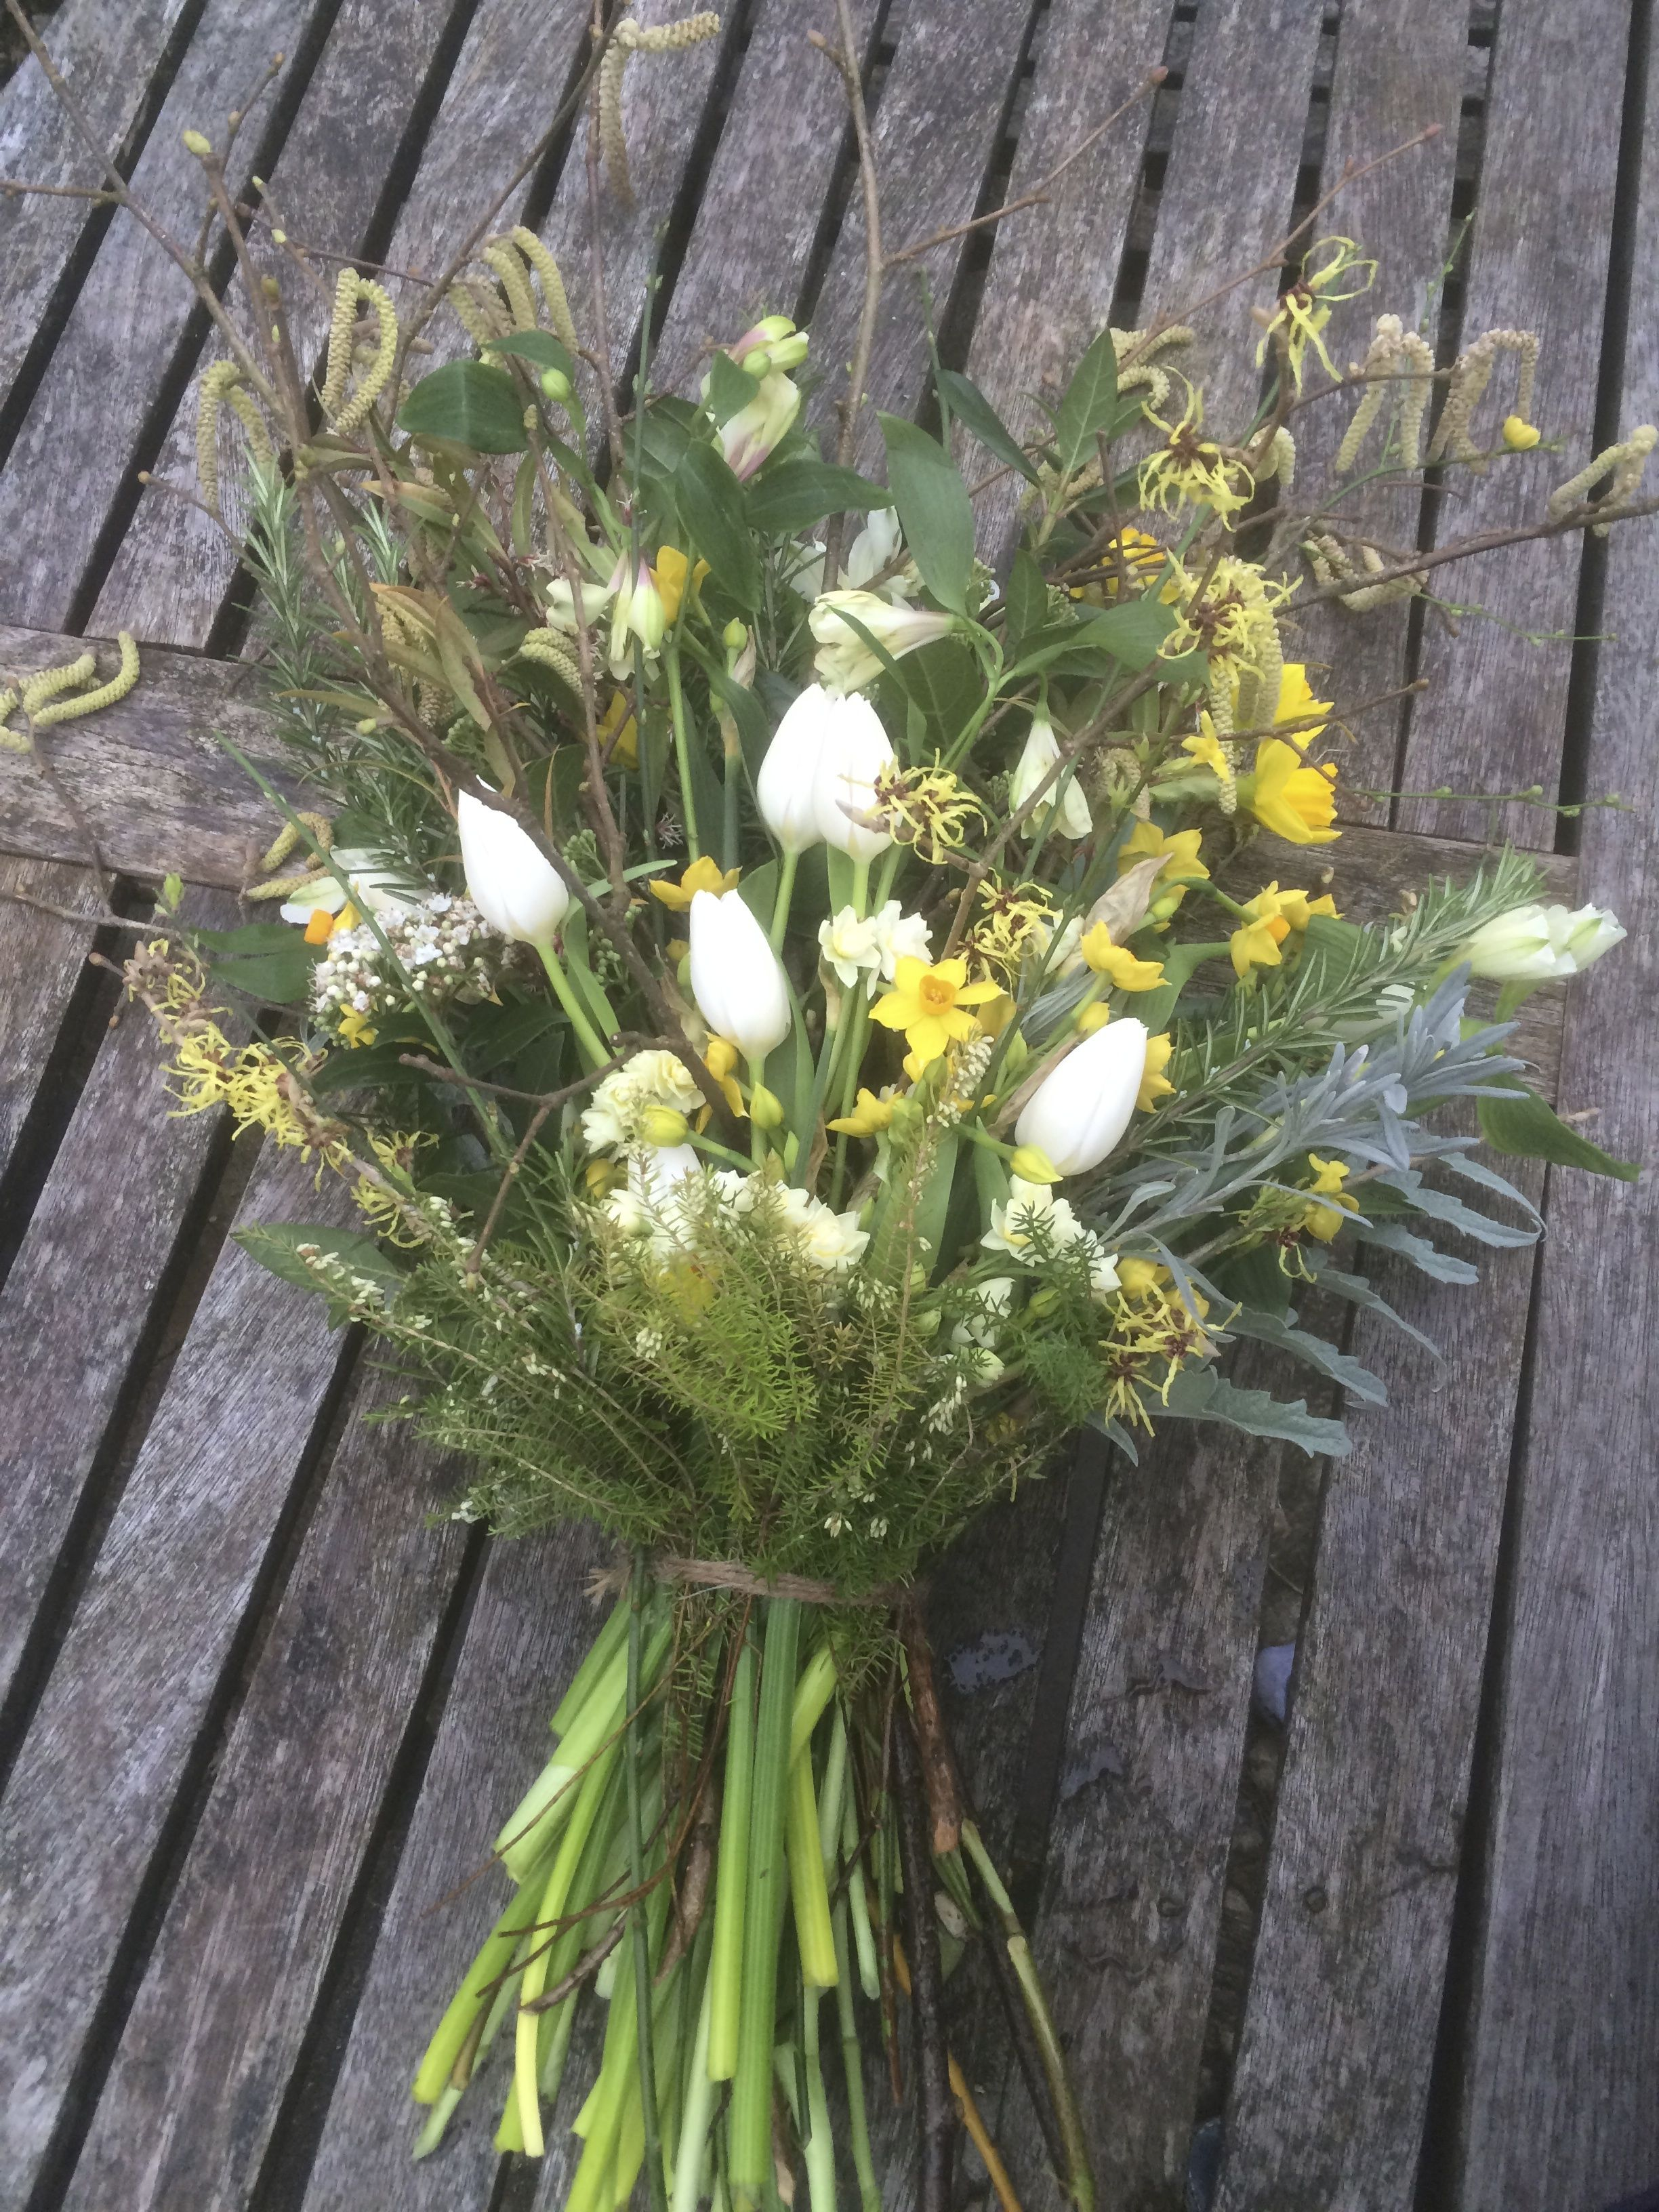 Late Winter Sheaf Of British Grown Spring Flowers For A Natural